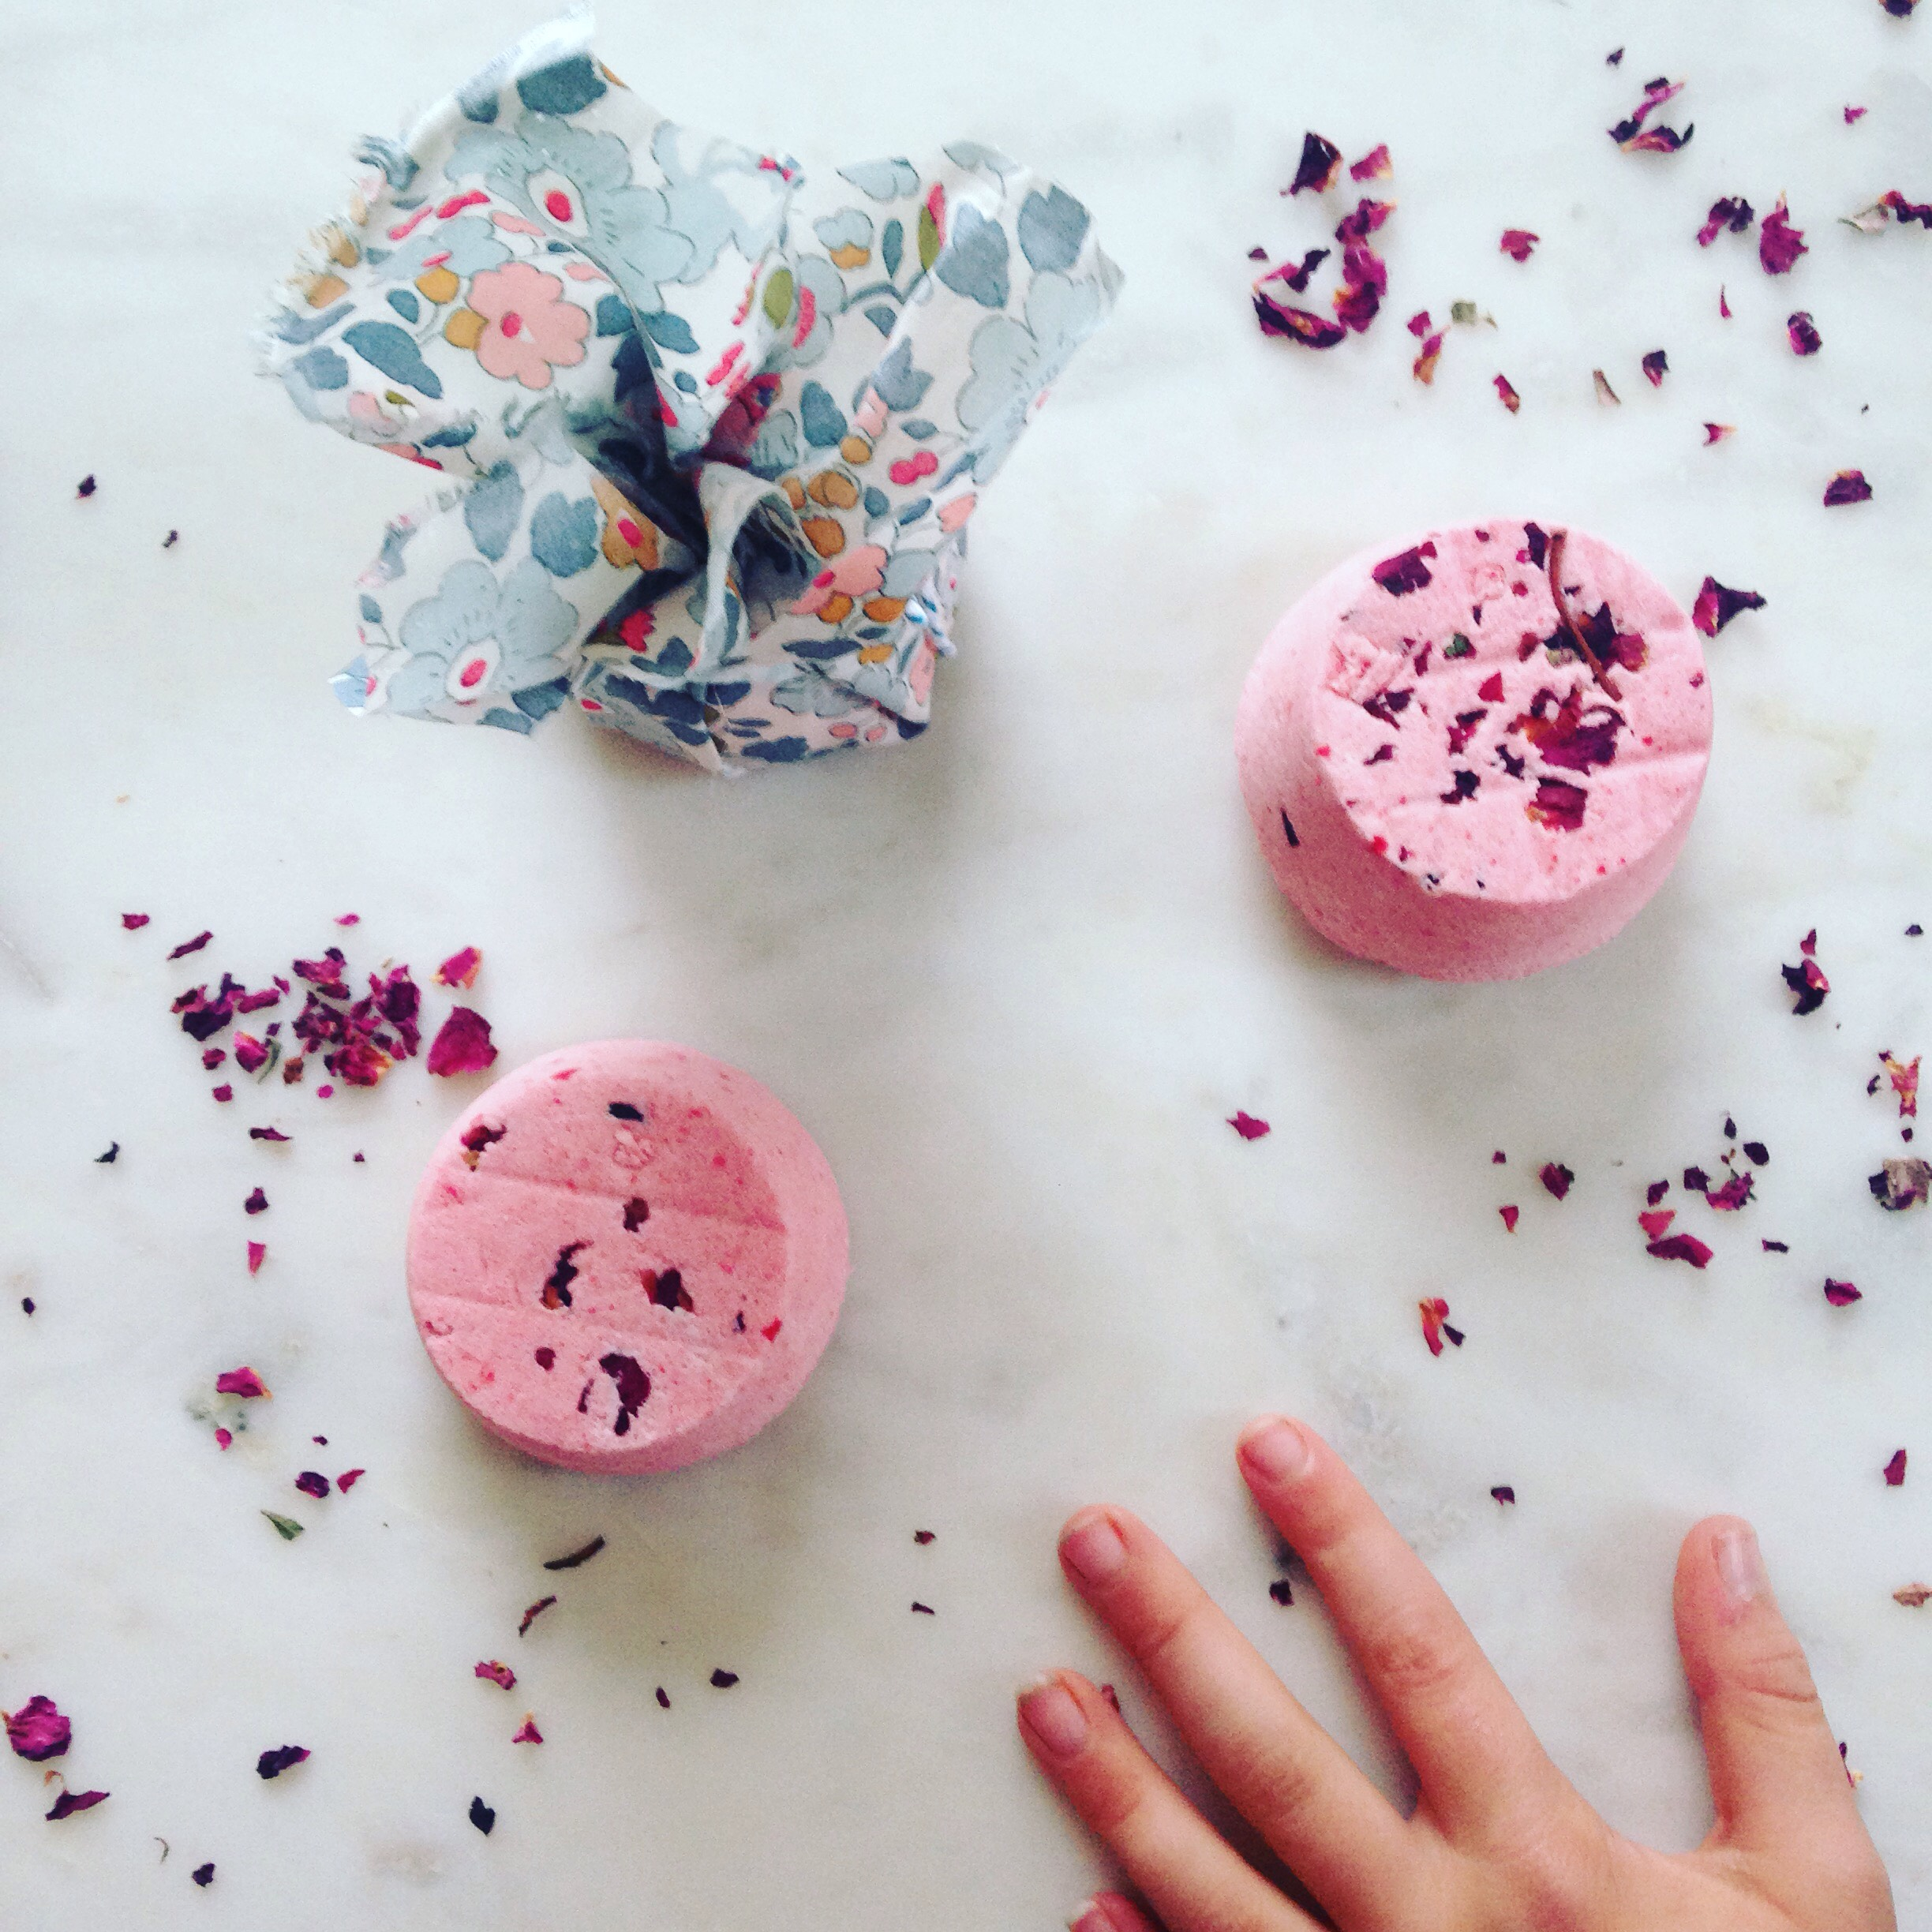 Recipe for Winter Love Bombs.  INGREDIENTS.  300g Bicarbonate of Soda,  100g Citric Acid  10ml Fragrance or Essential Oil of your choice (for sensitive babes use half)  Colour - most food colours are fine.   Razzamatazz- glitter, rose petals, confetti, go wild.  METHOD...  1. Brush a little olive/almond oil inside your mould (silicone ice cube trays or cup cake moulds work a treat)  2. Combine the bicarb, citric acid with food colouring and mix together with your hands.  3. Add your essential oils and mix to combine.  4. Spray a little water into the mixture, just enough so that it holds together when you squish it in the palm of your hand.  5. Add your razzamatazz (glitter, rose petals etc).  6. Push into your moulds and leave to dry out for 2-3 days.